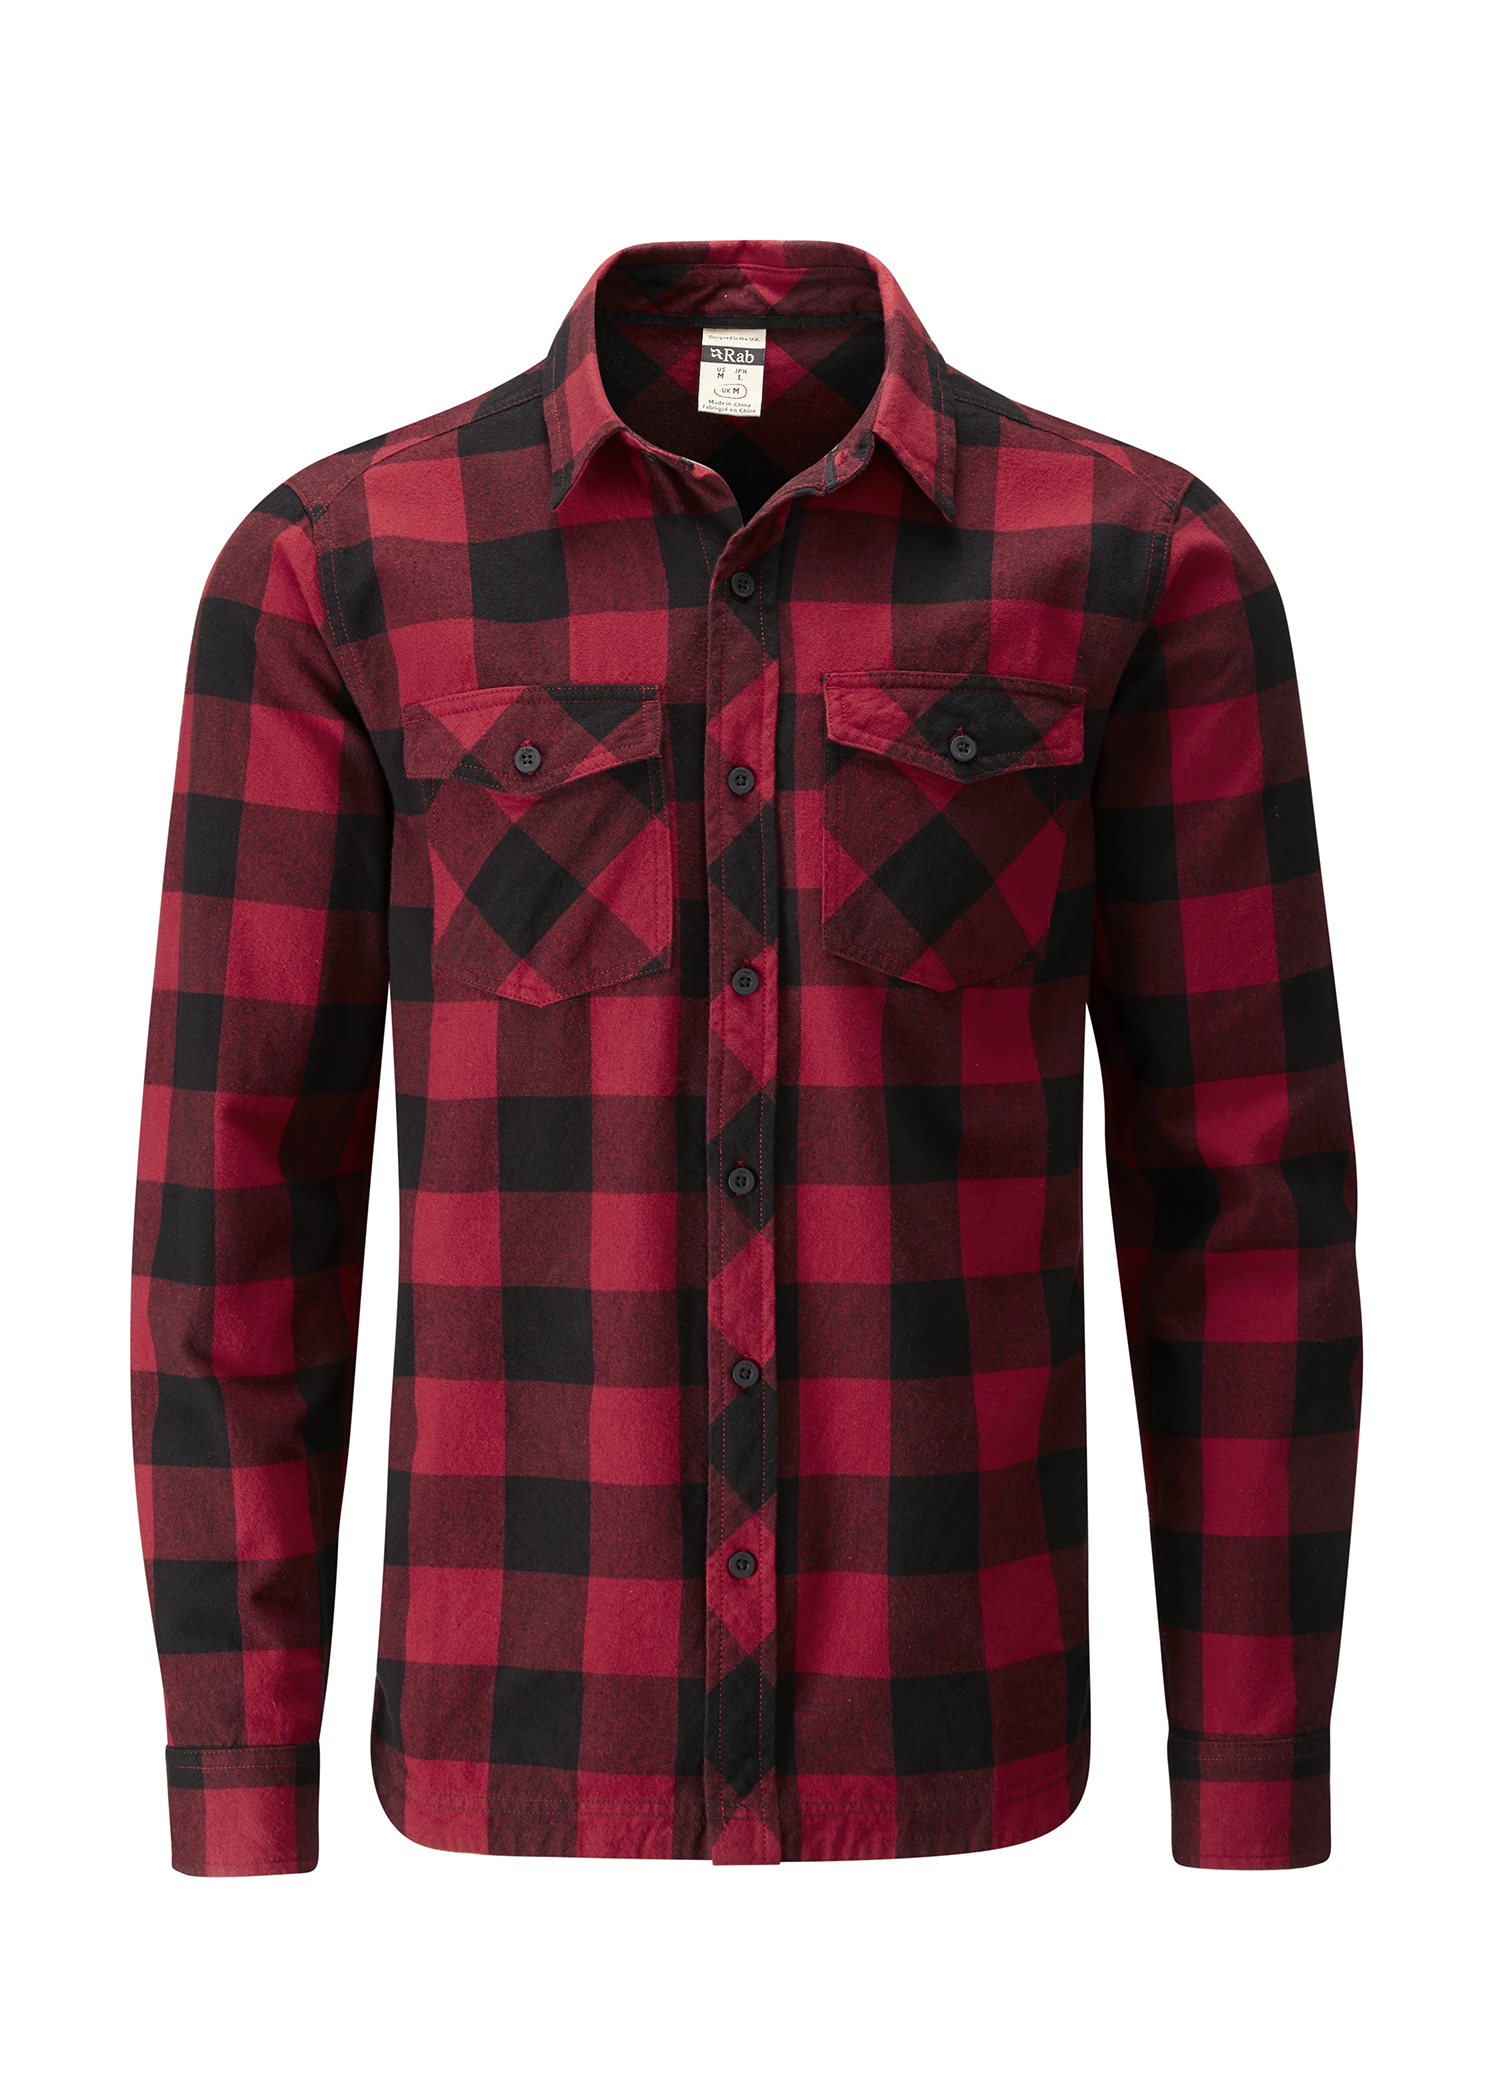 boundary_shirt_autumnred_QCA_65_AR.jpg